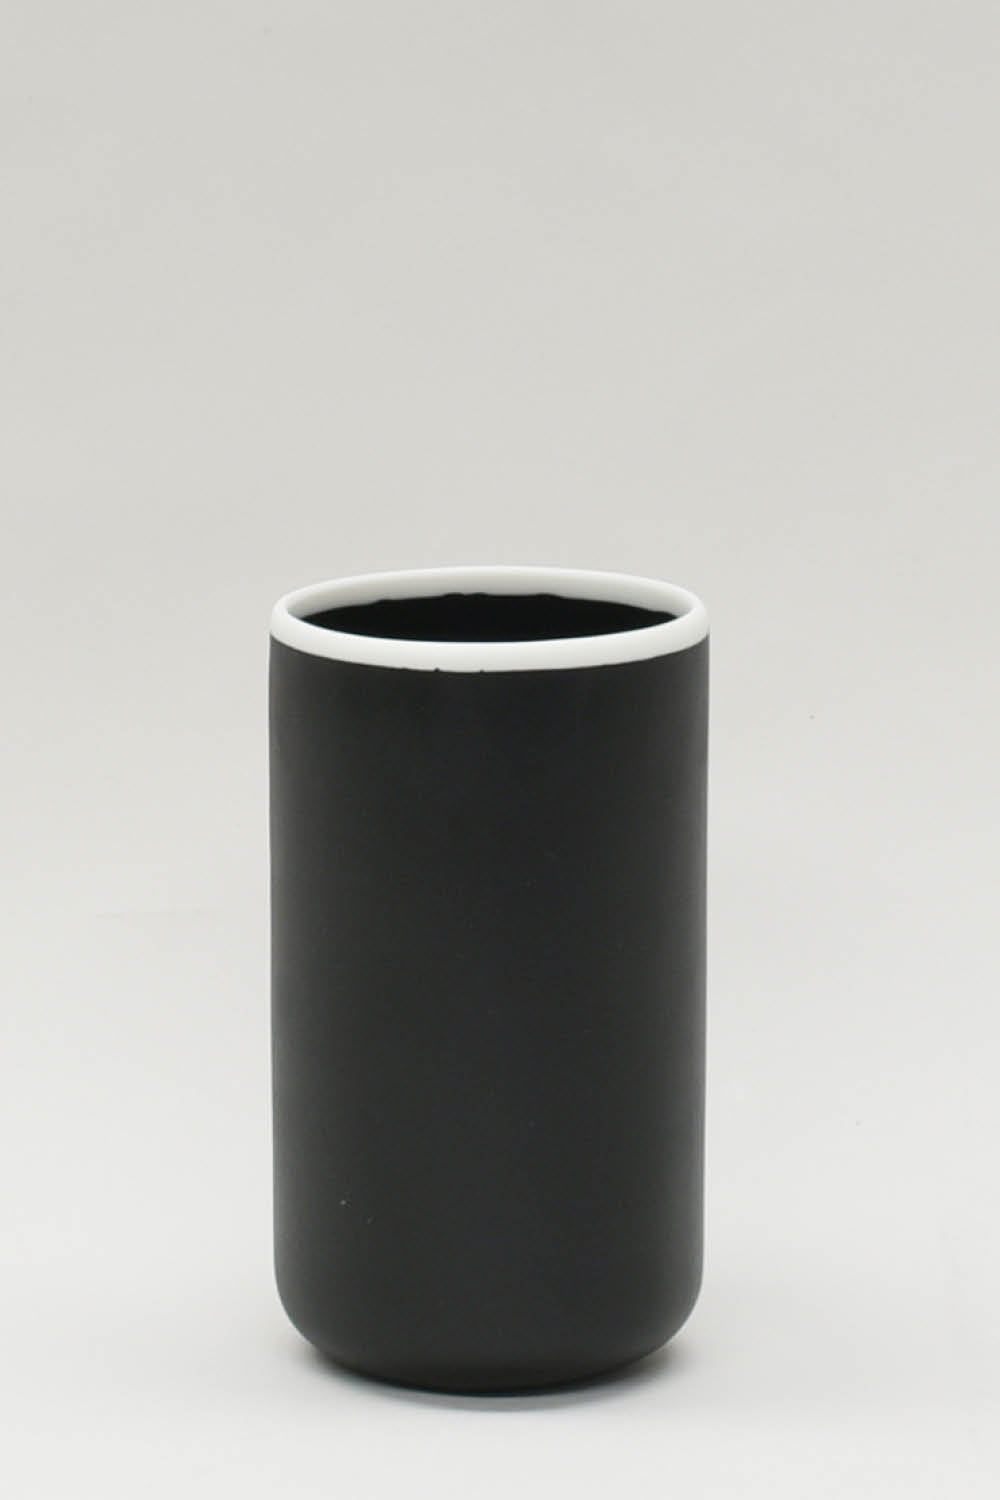 Vase in Black with White Rim